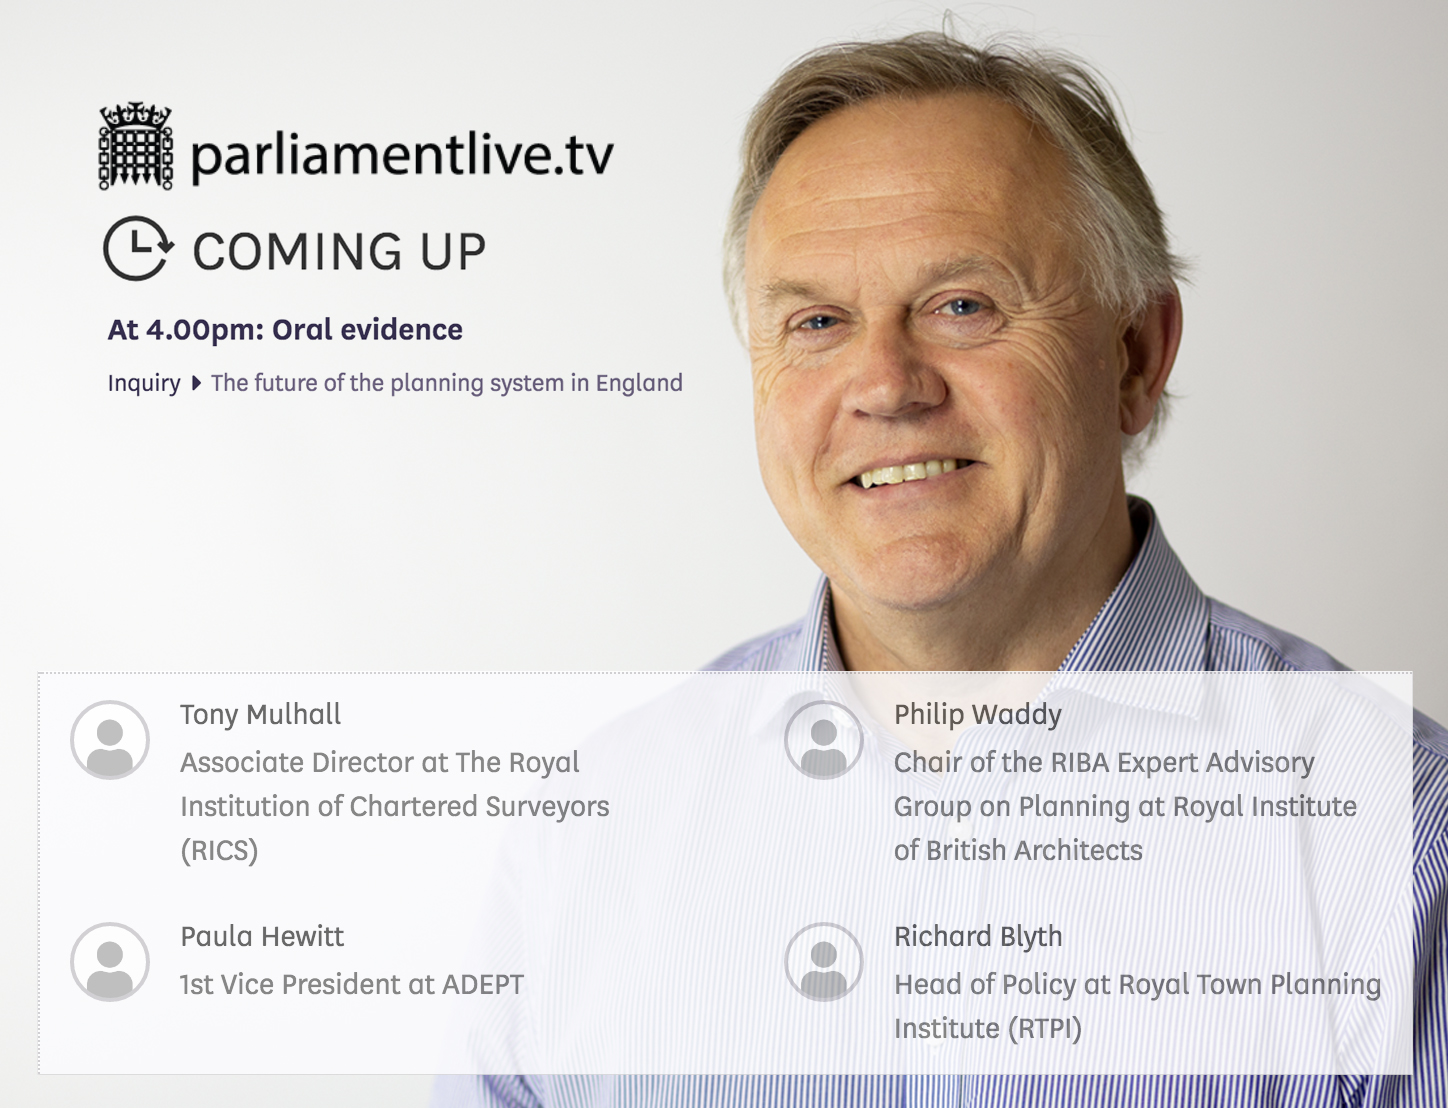 Philip Waddy, Parliament TV, Westminster, West Waddy, Architects, Town Planners, Urban Designers